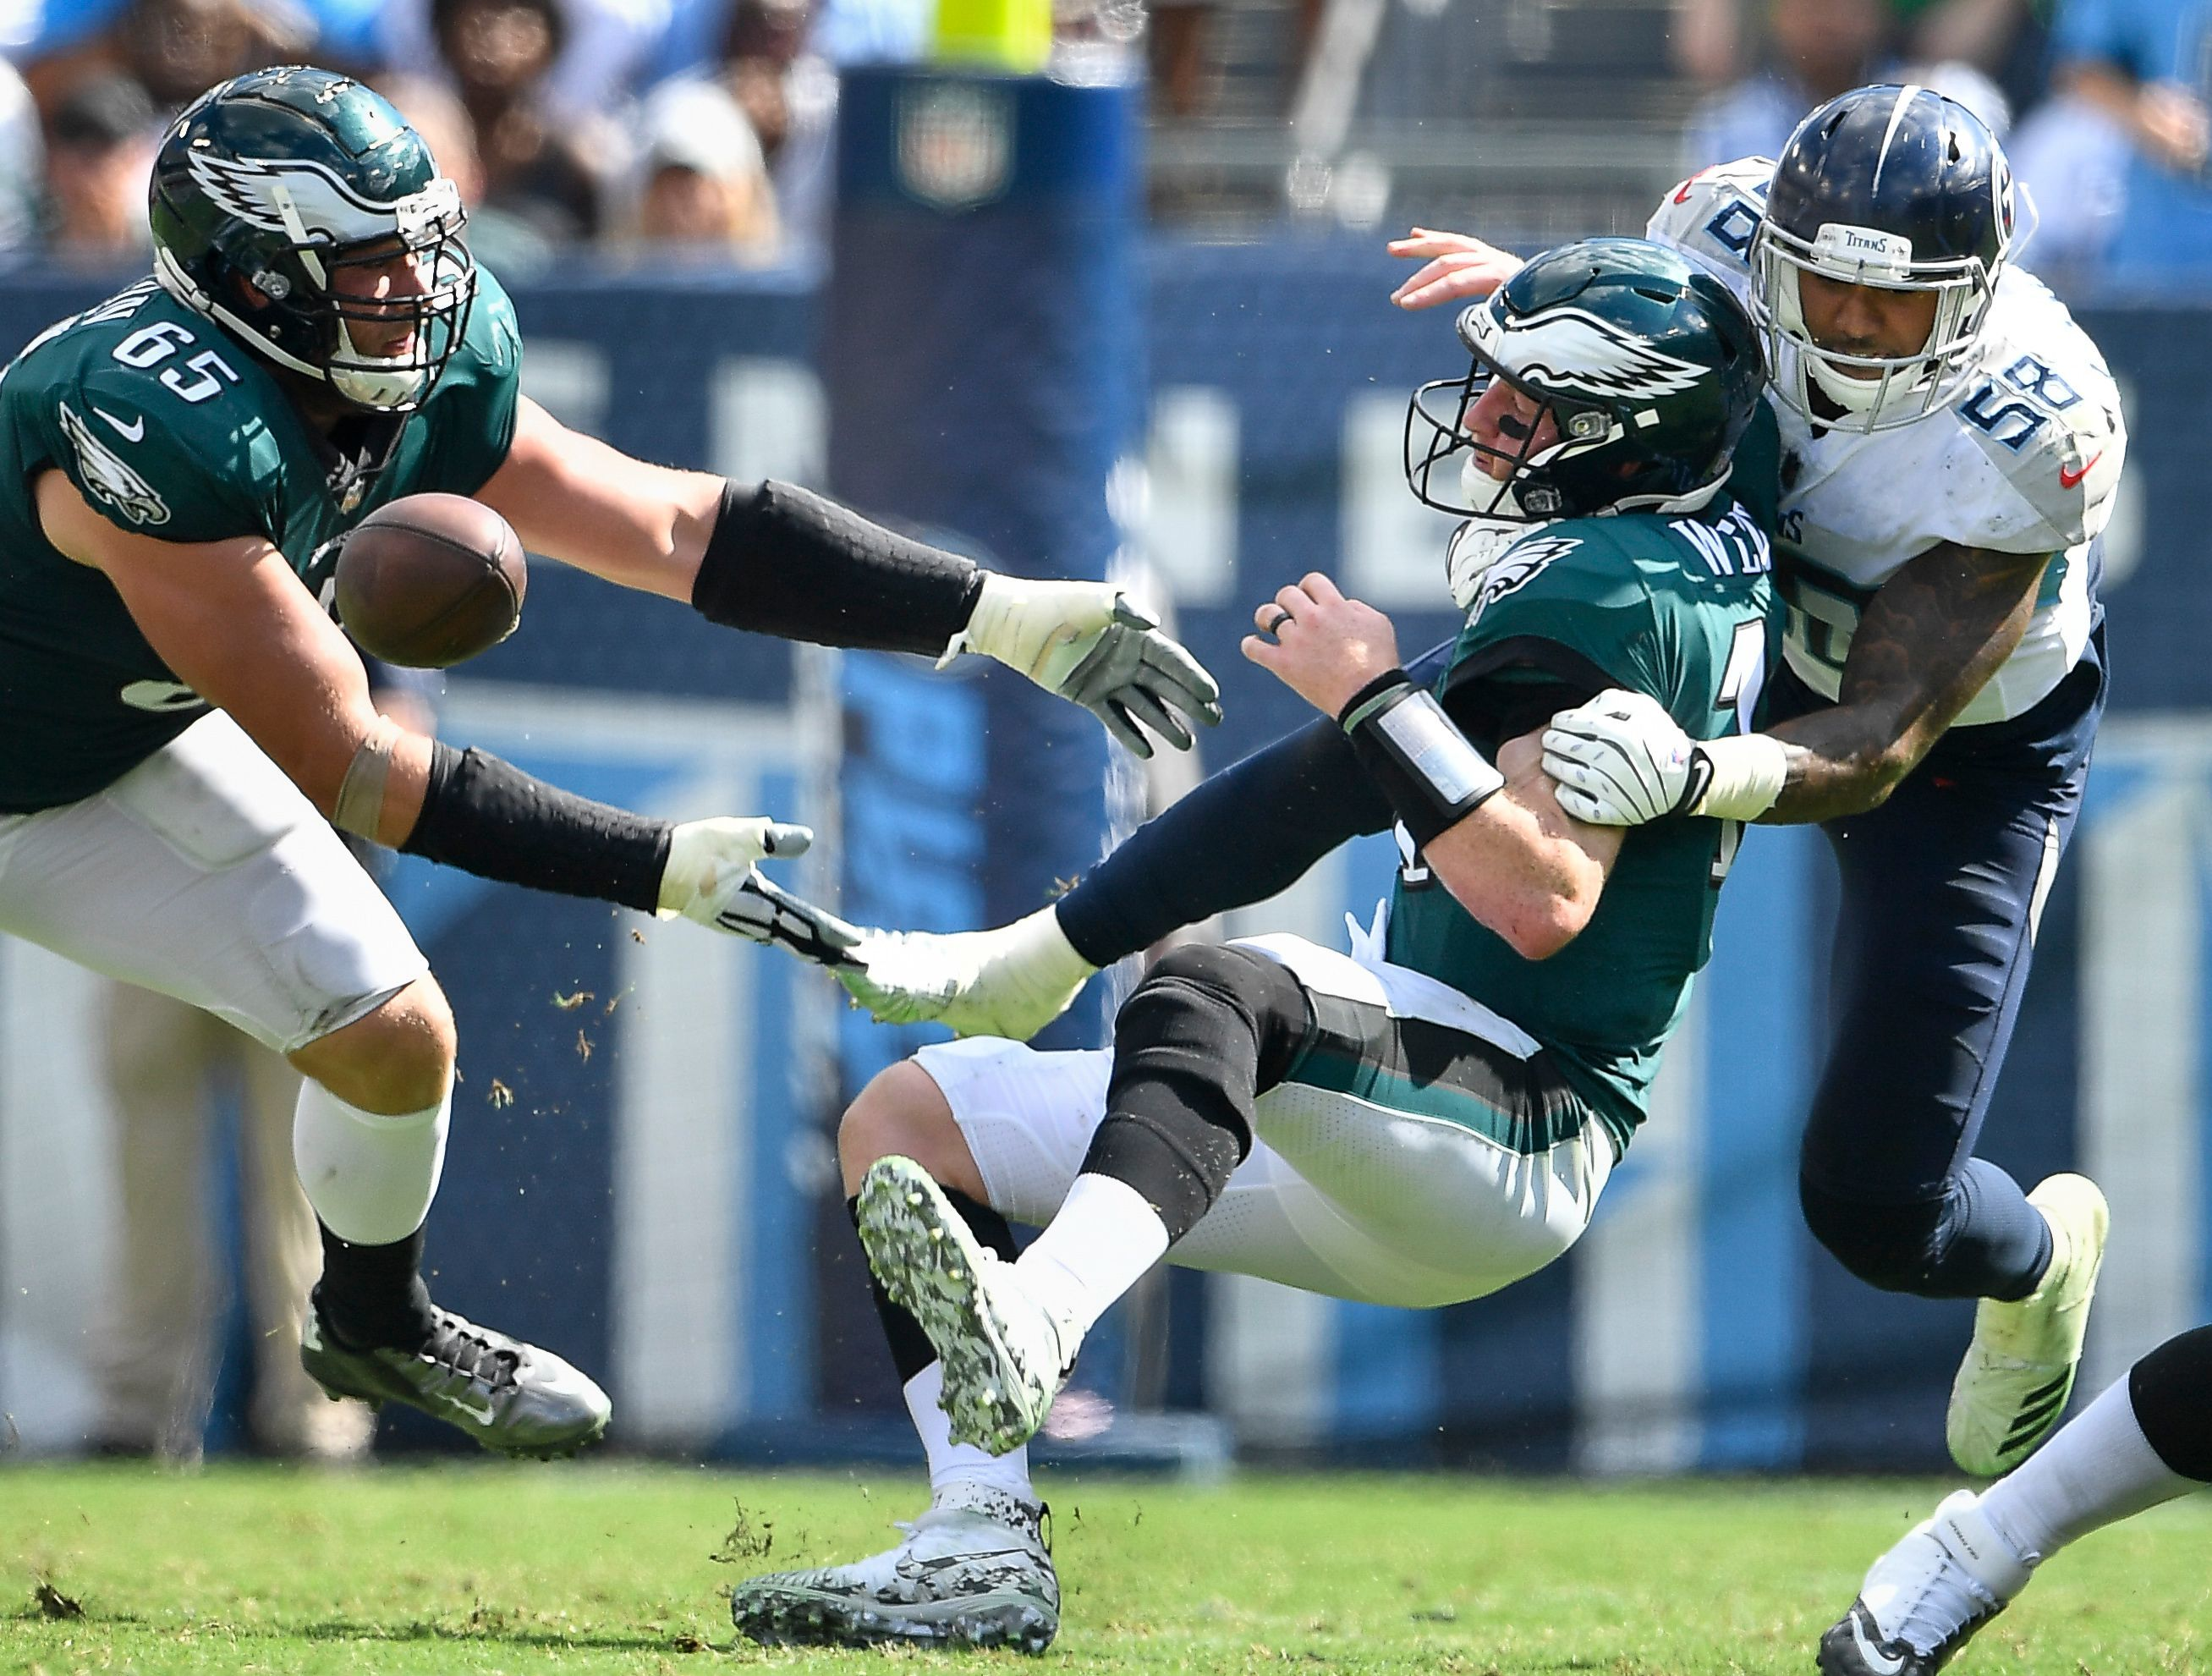 Titans linebacker Harold Landry (58) forces Eagles quarterback Carson Wentz (11) to fumble as he is sacked during the fourth quarter Sunday.